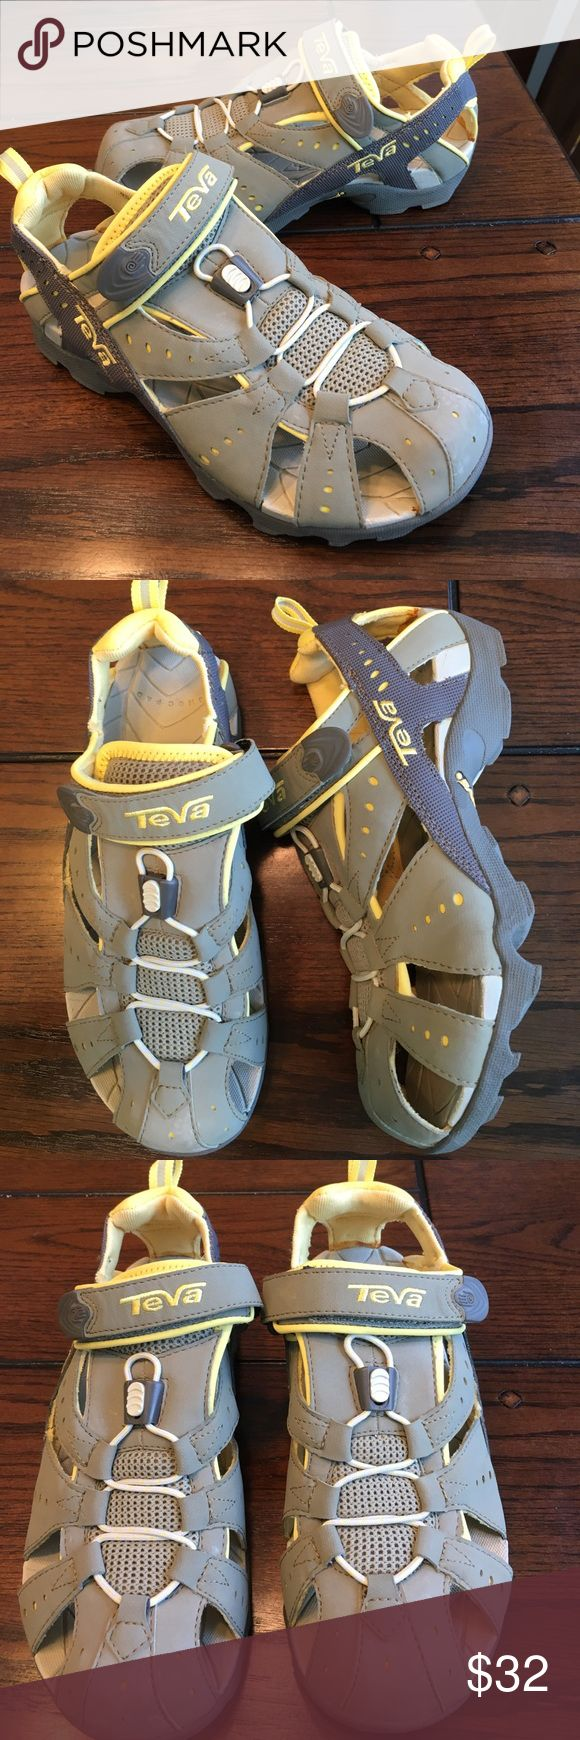 EUC Teva Dozer hiking water shoes Sandal sneaker The shoes have been worn once from a non-smoking household and are in excellent condition look brand new. Teva Shoes